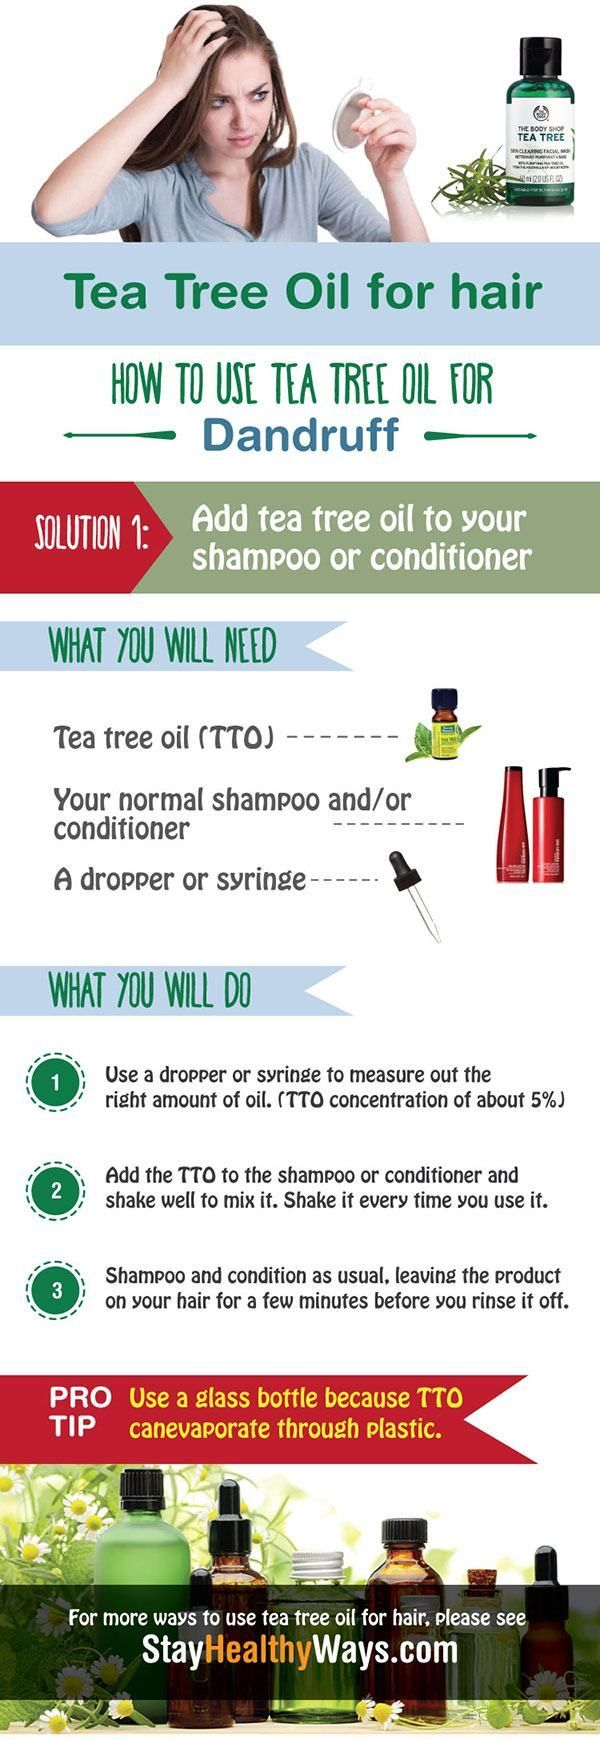 Best Beauty Diy Ideas :   Illustration   Description   All You Need to Know About How to Use Tea Tree Oil for Hair and Scalp. The answer is that tea tree oil will help with all those concerns. No matter your hair type, a healthy scalp leads to healthy, shiny hair, stimulates hair growth and... - #DIYBeauty